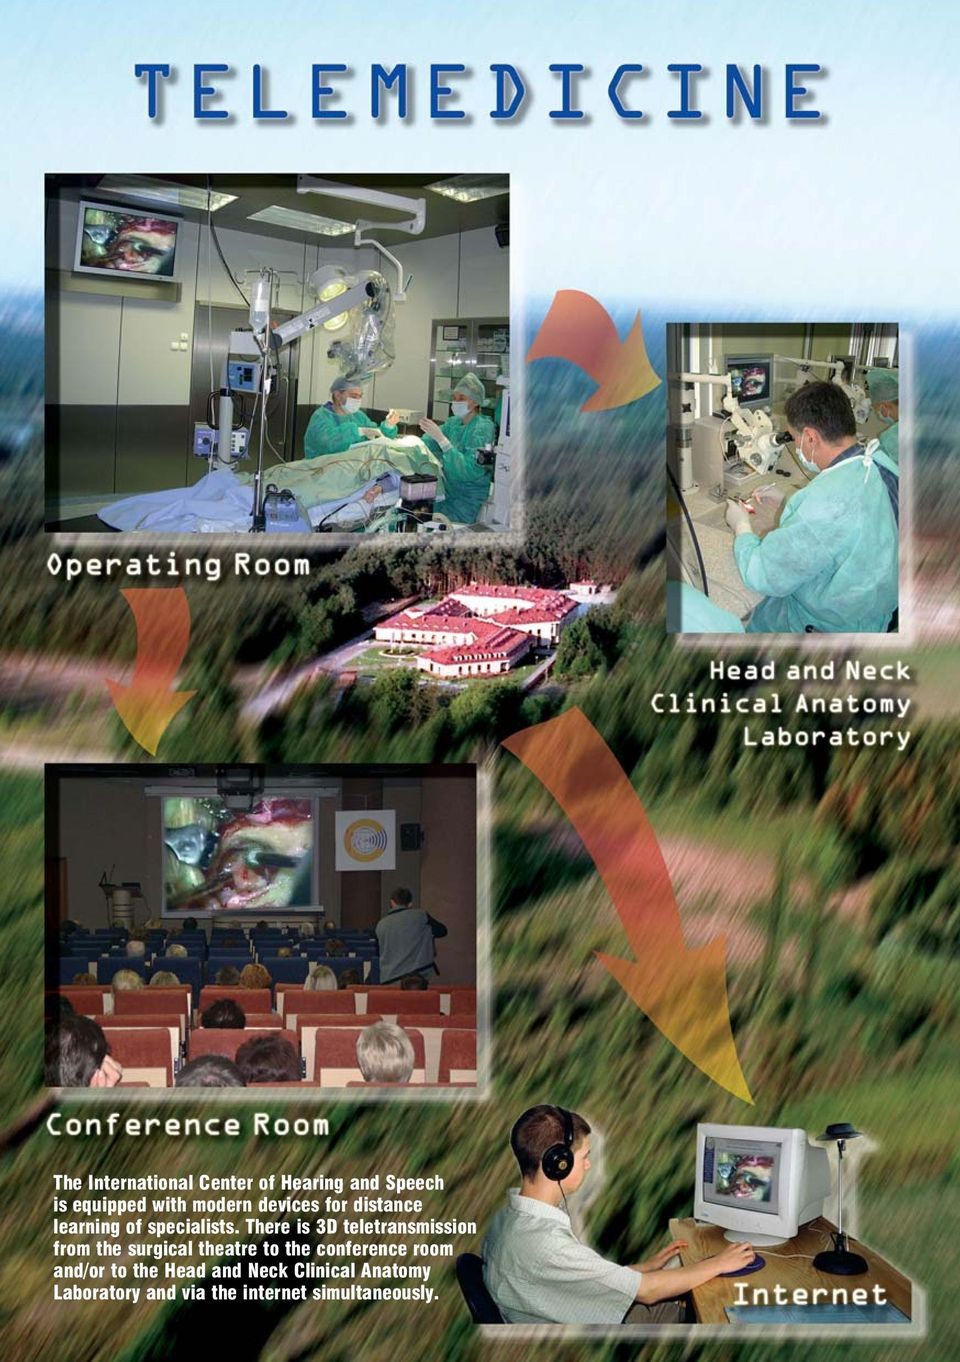 There is 3D teletransmission from the surgical theatre to the